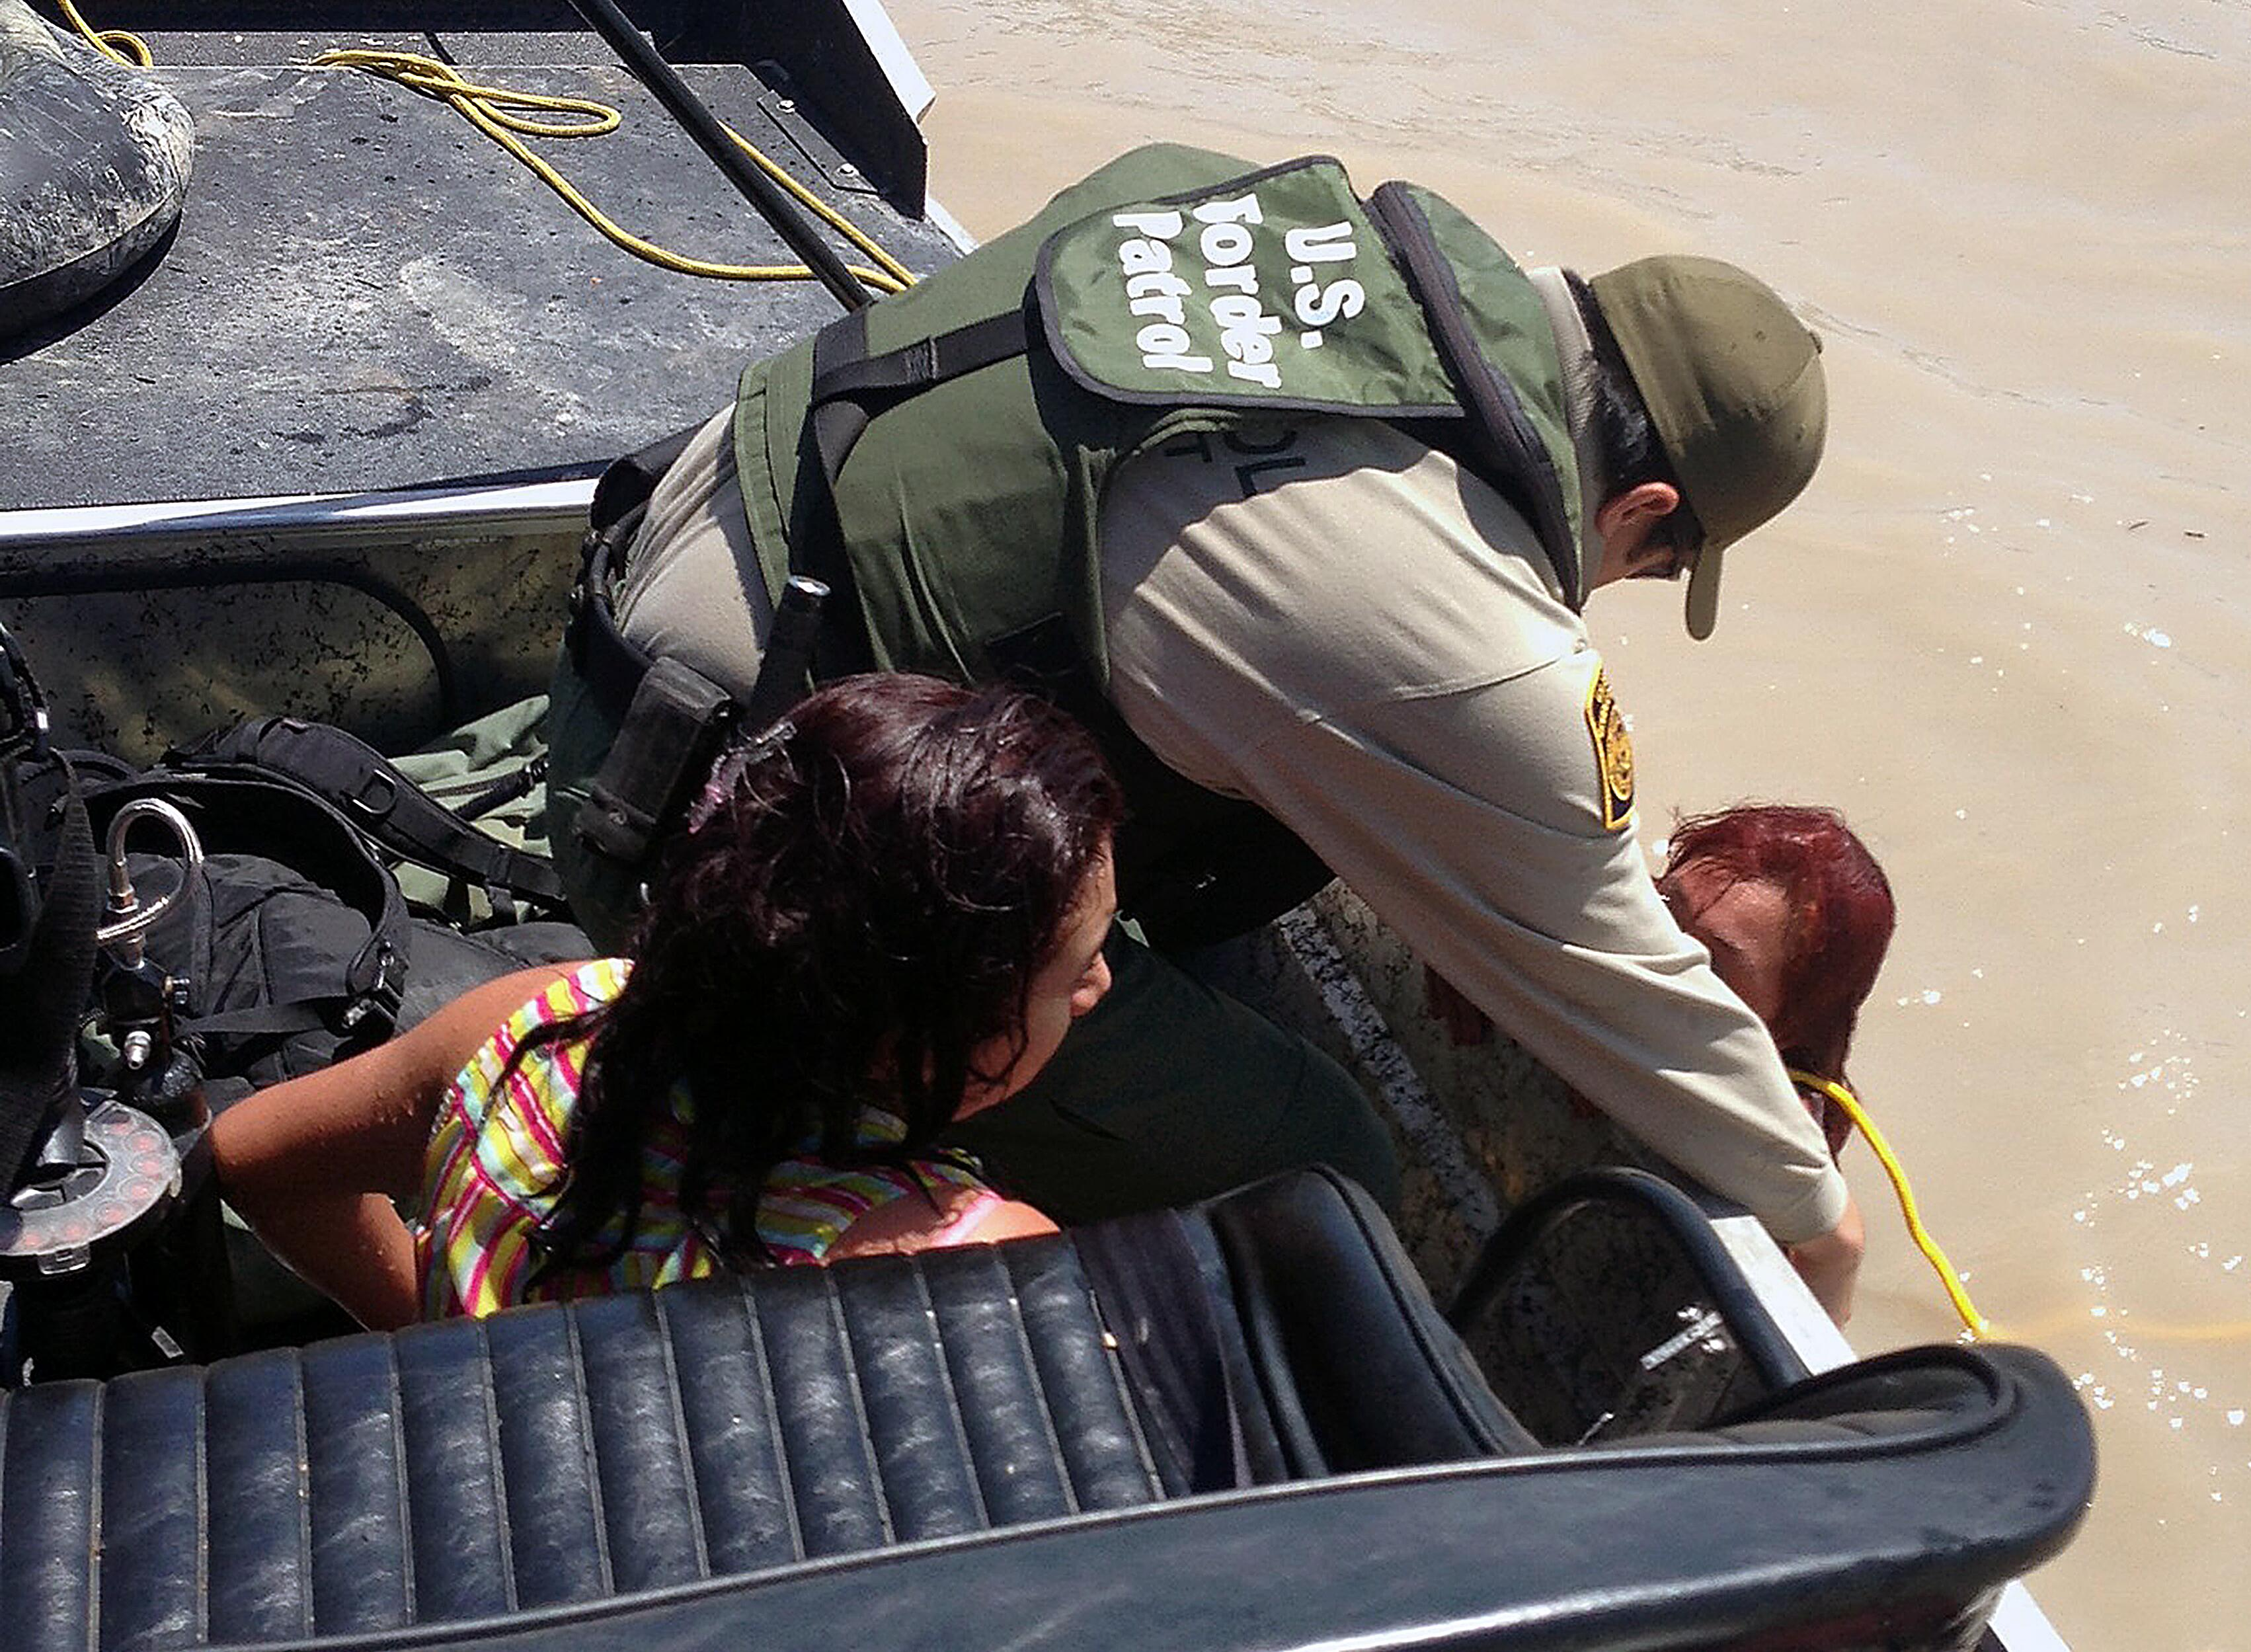 Border Patrol agents from Eagle Pass, Texas rescue a woman and her daughter from the Rio Grande River. The El Salvador citizens were struggling to stay afloat when spotted by agents, who deployed flotation devices and pulled them from the water. <em>(Photo by Border Patrol Agent Carl Nagy)</em>